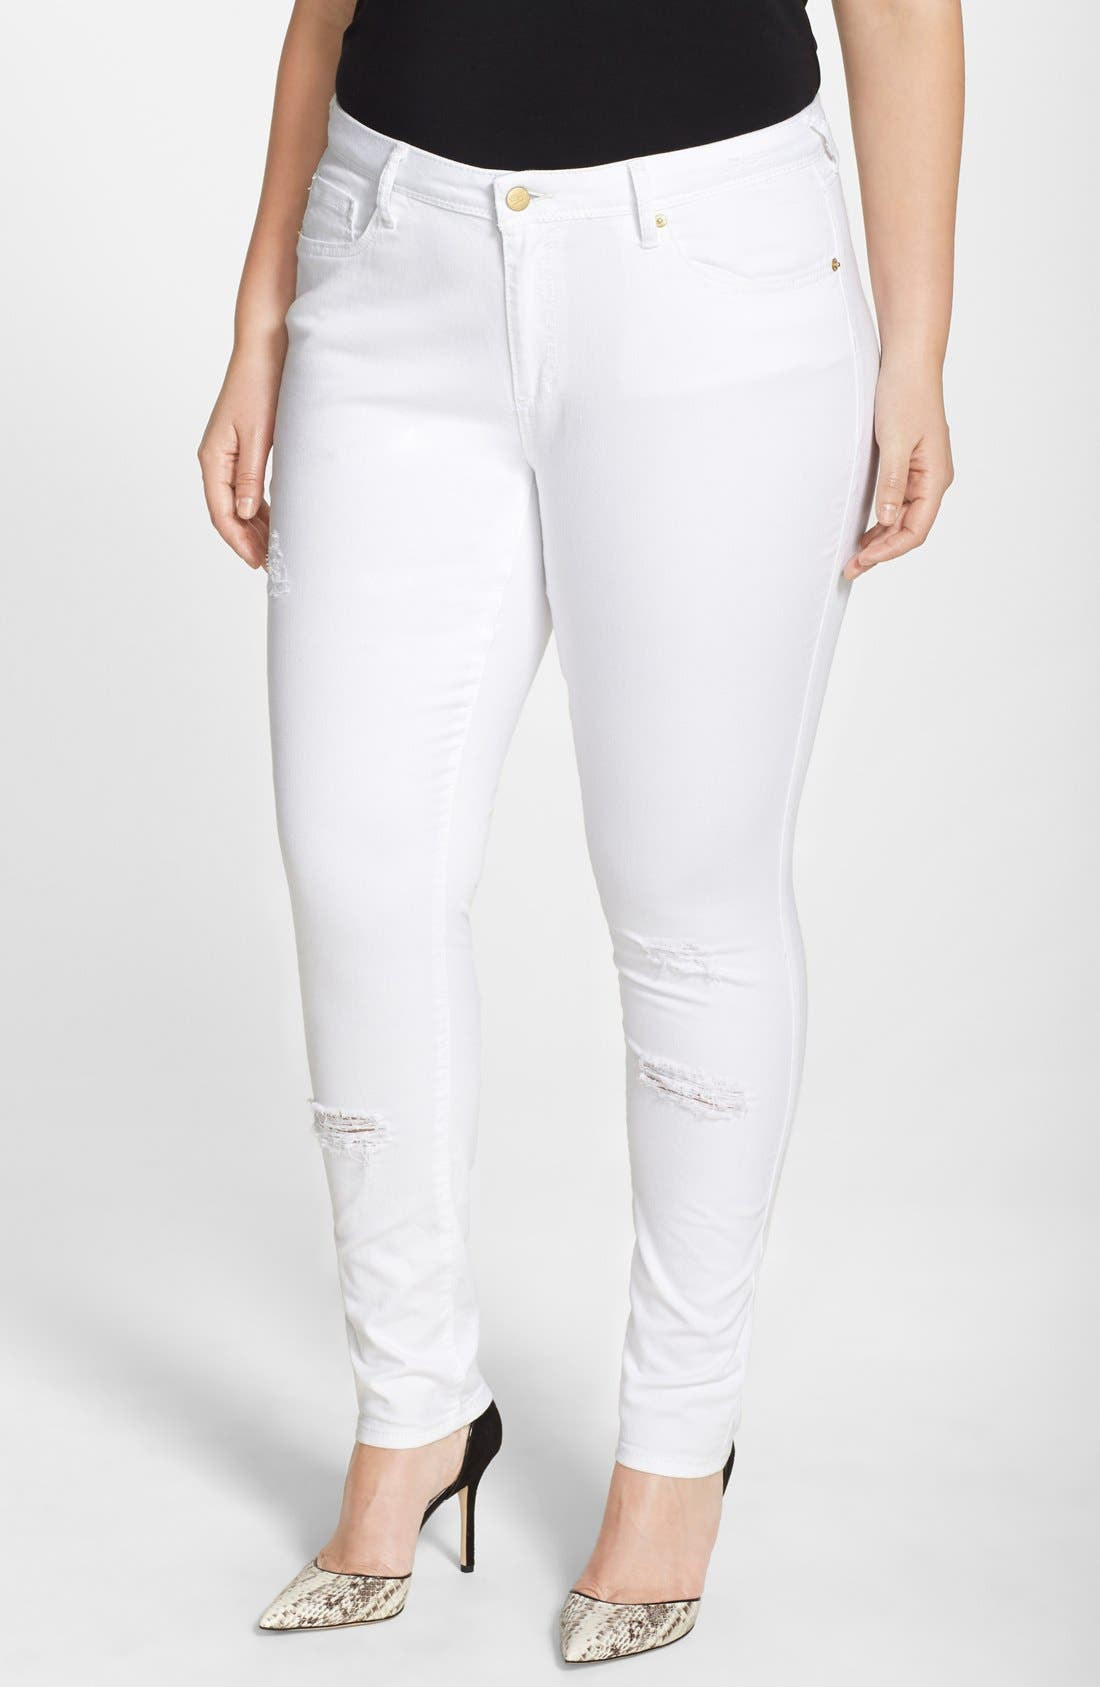 Main Image - Poetic Justice 'Maya' Destroyed White Skinny Jeans (Plus Size)